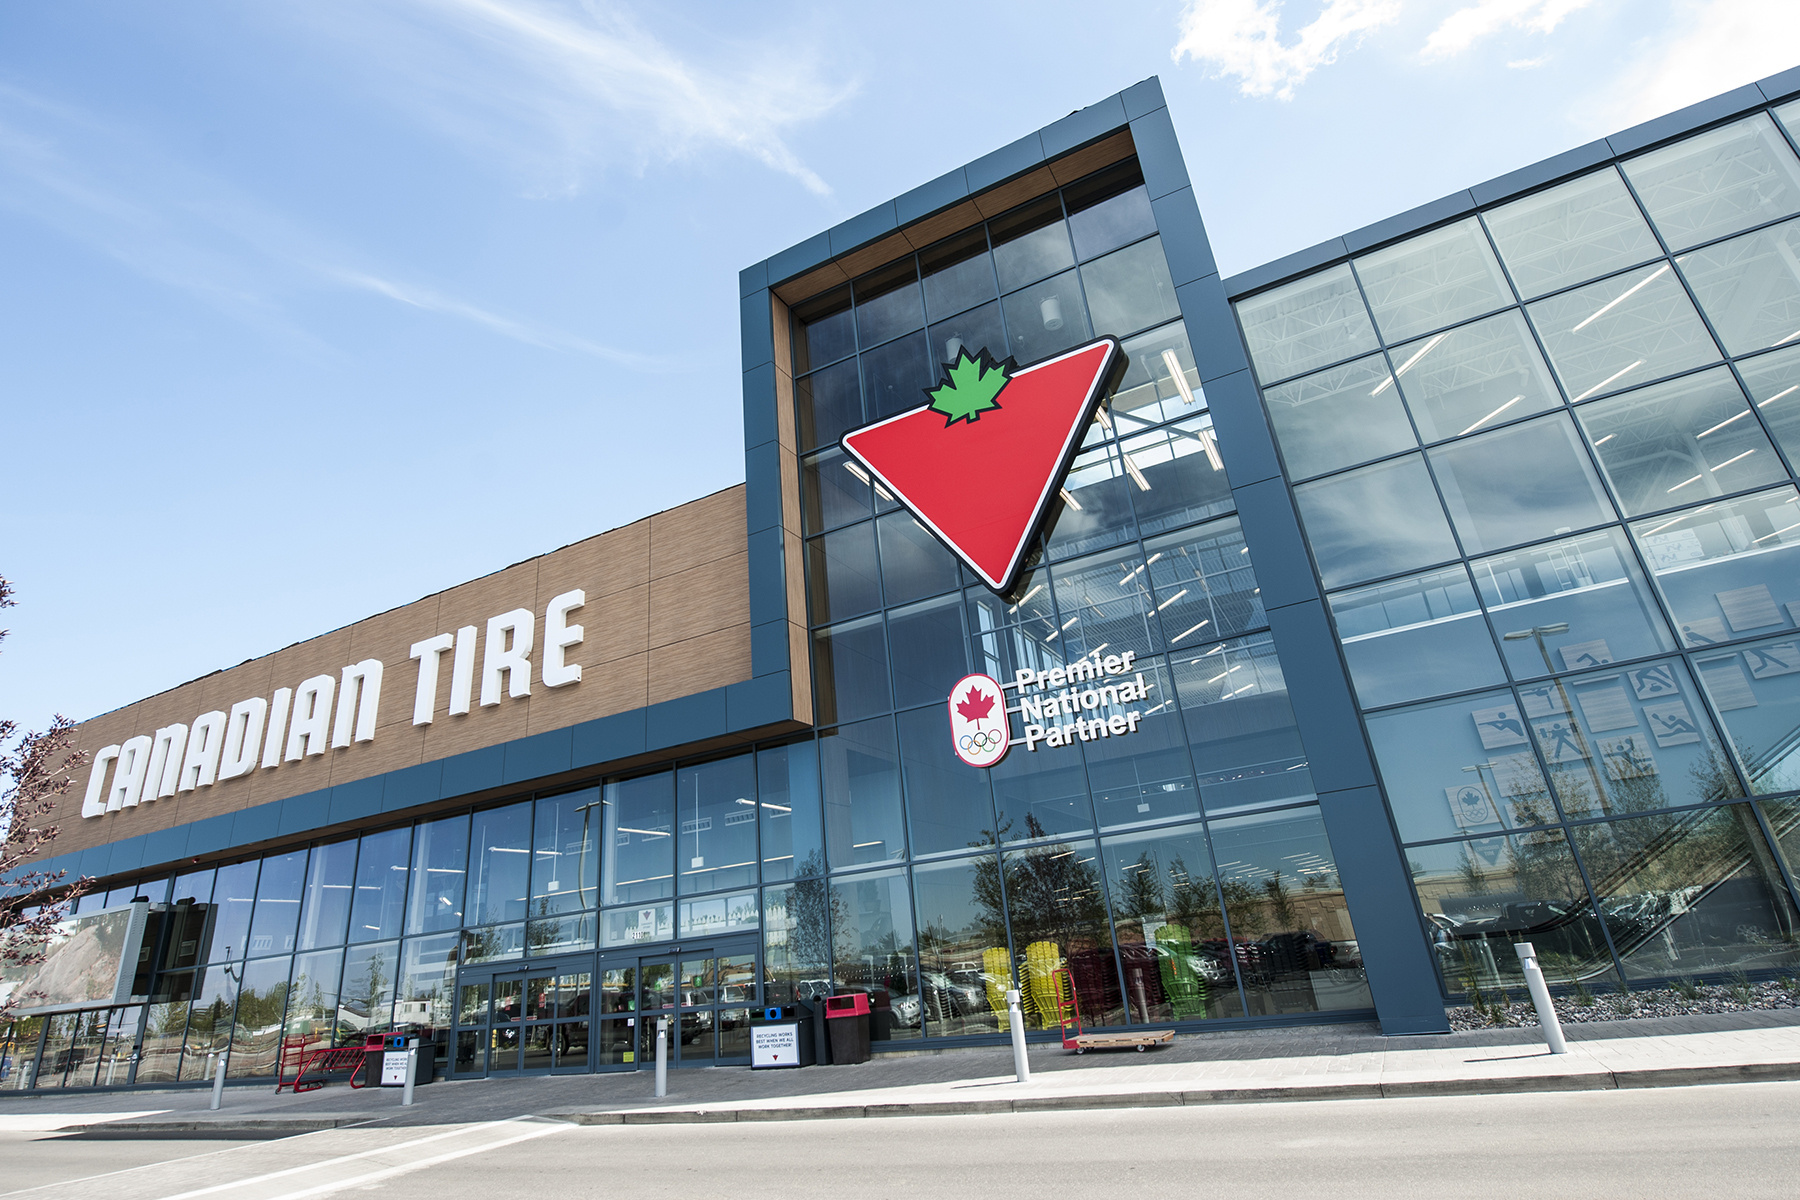 Canadian Tire opened this new Edmonton location, its largest store ever, in June 2015.